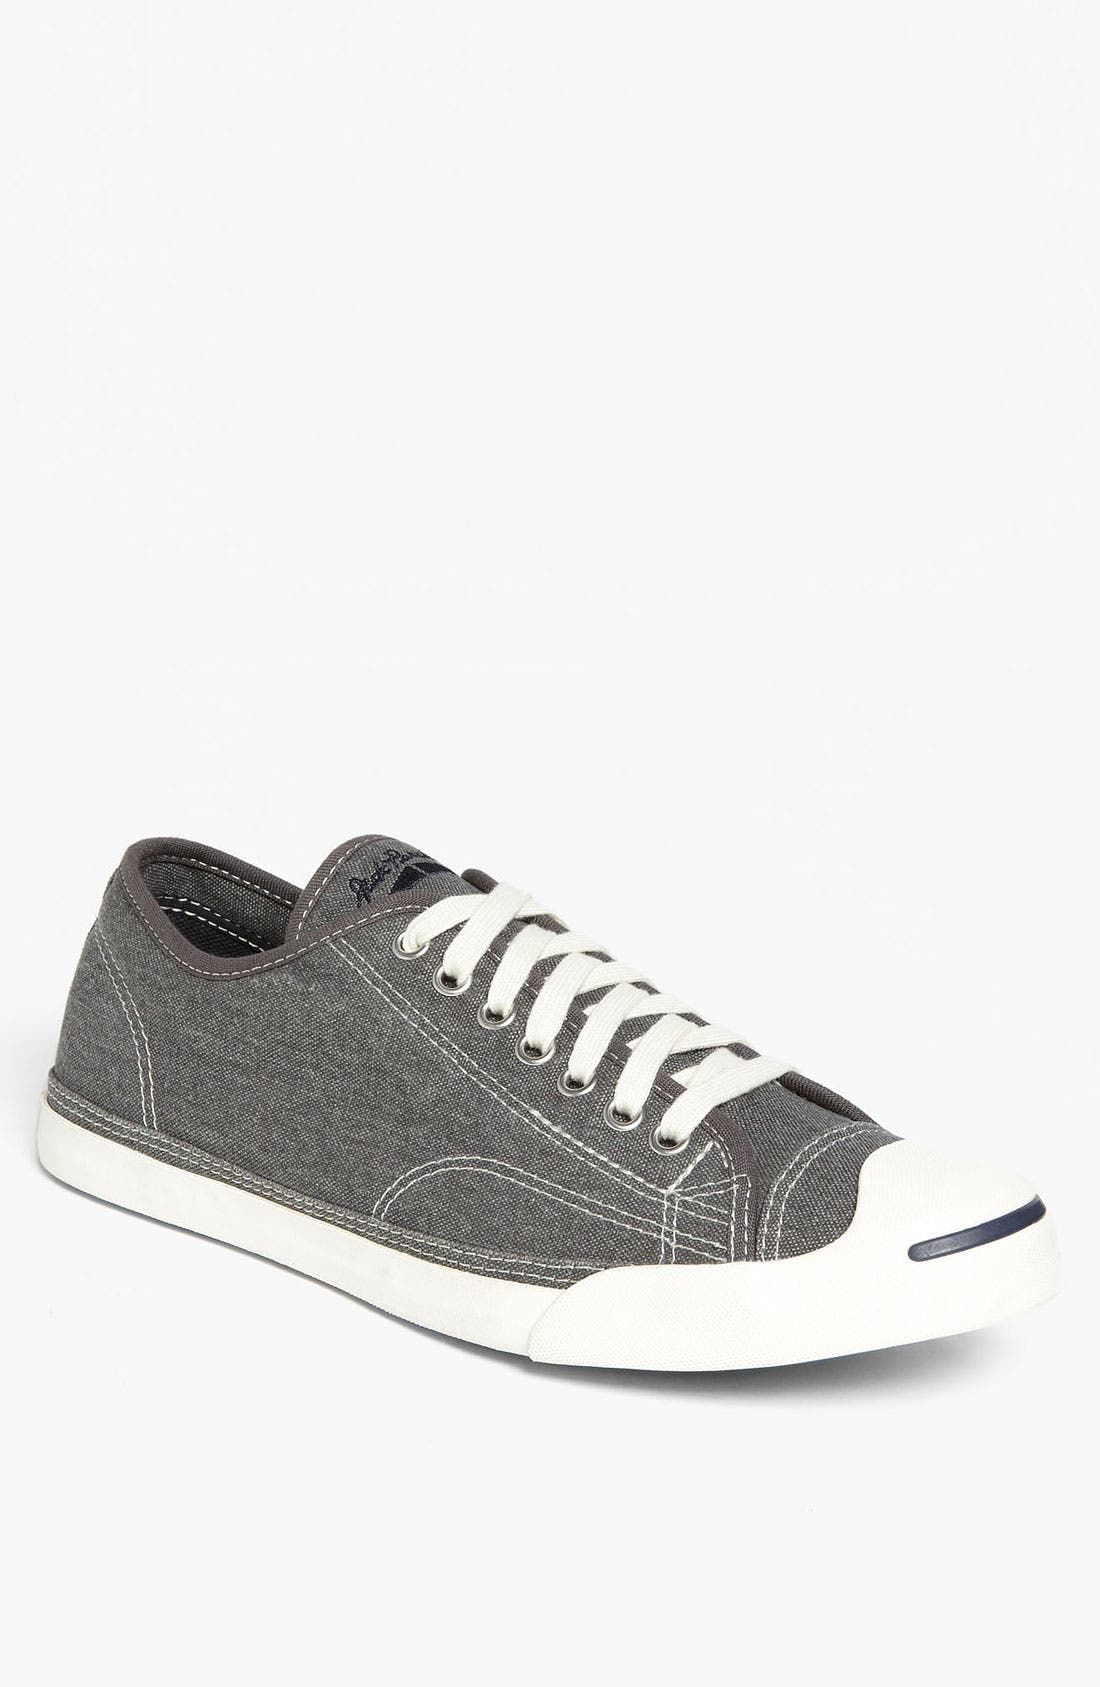 Alternate Image 1 Selected - Converse 'Jack Purcell LP' Sneaker (Men)